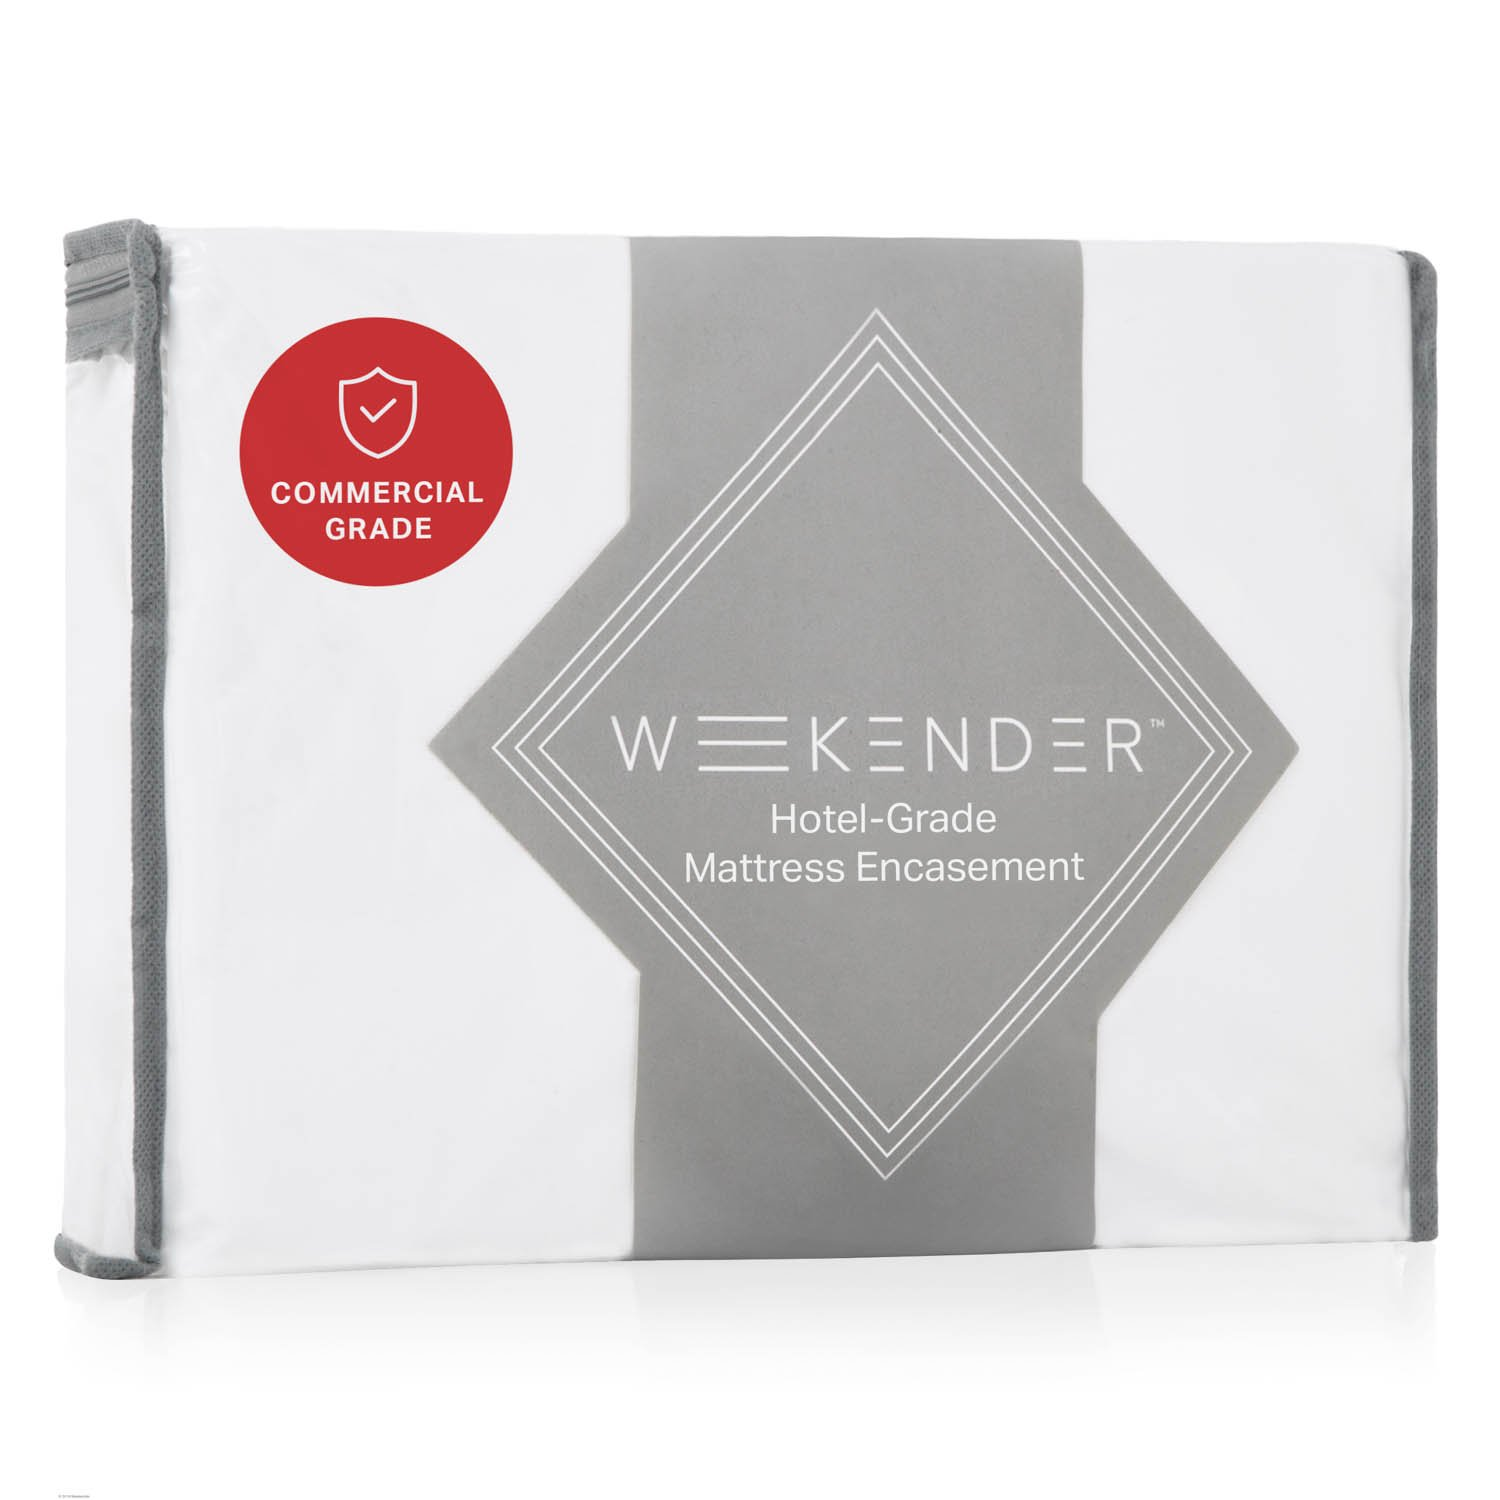 WEEKENDER Commercial-Grade Encasement Mattress Protector Protector on Amazon - Waterproof - 360 Degree Protection - High Heat Dryer Proof - Bleachable - Reinforced Seams - Twin XL